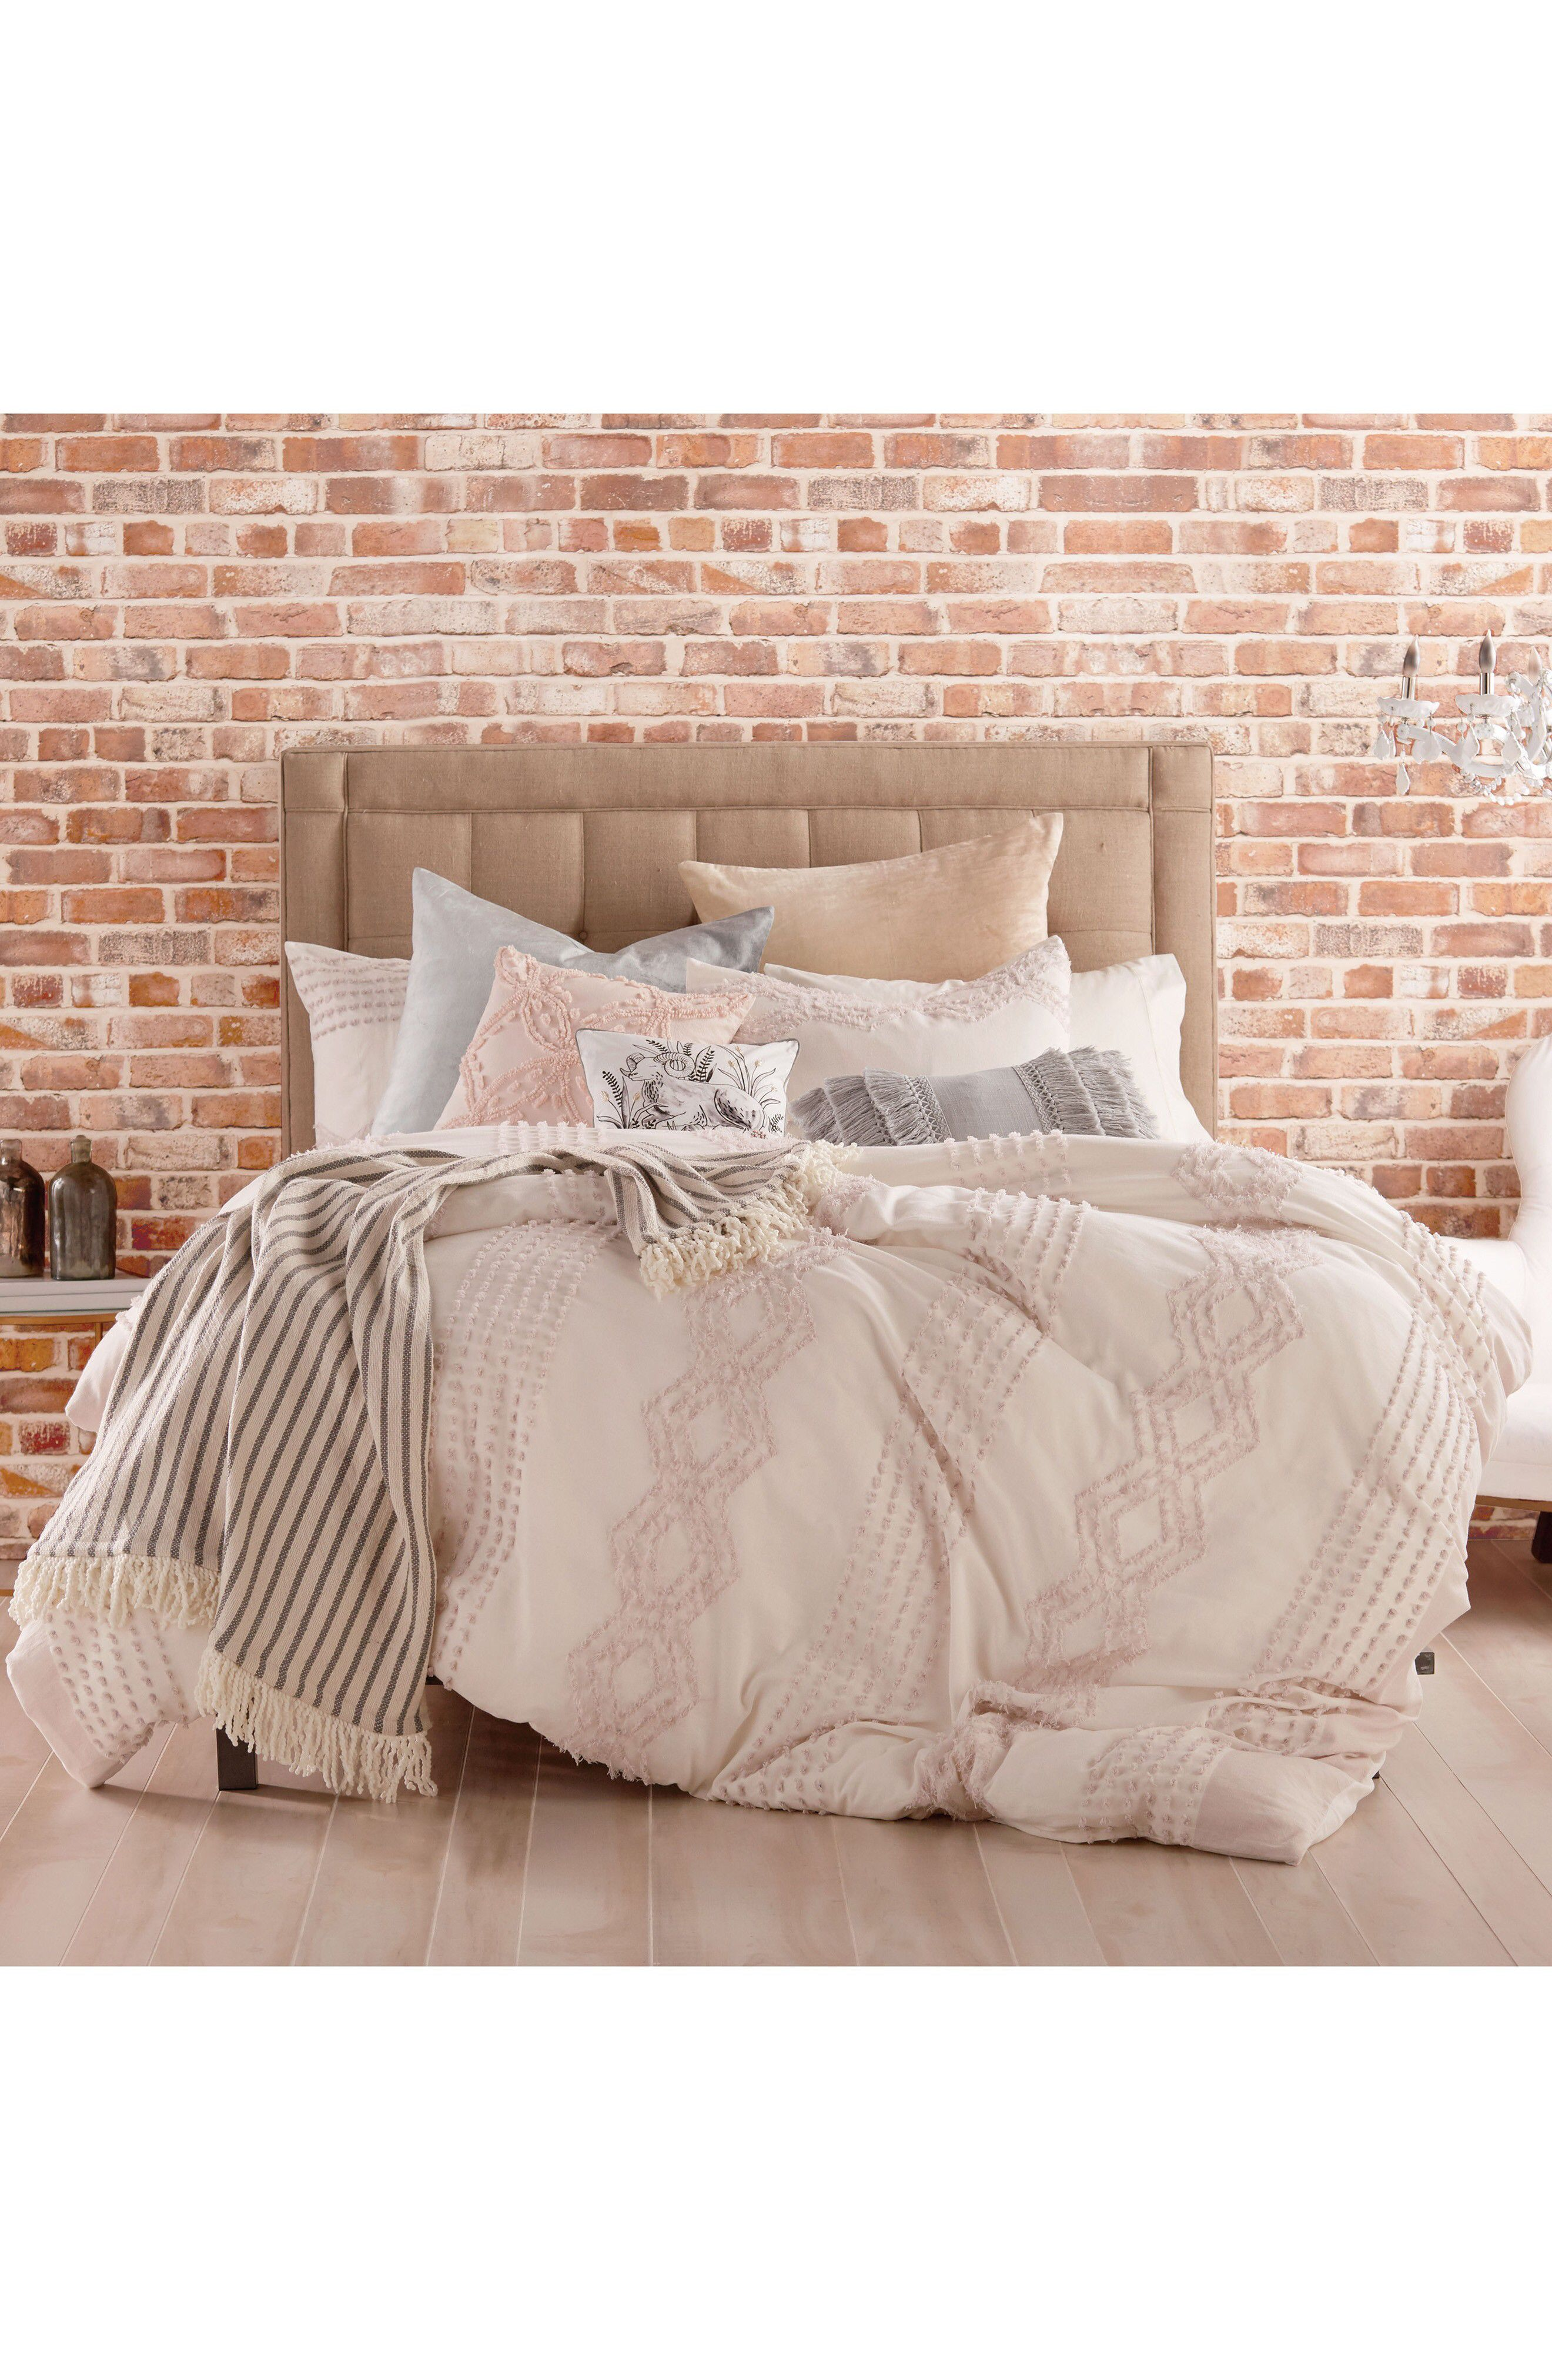 Peri Home Cut Geo Chenille Comforter & Sham Set Available